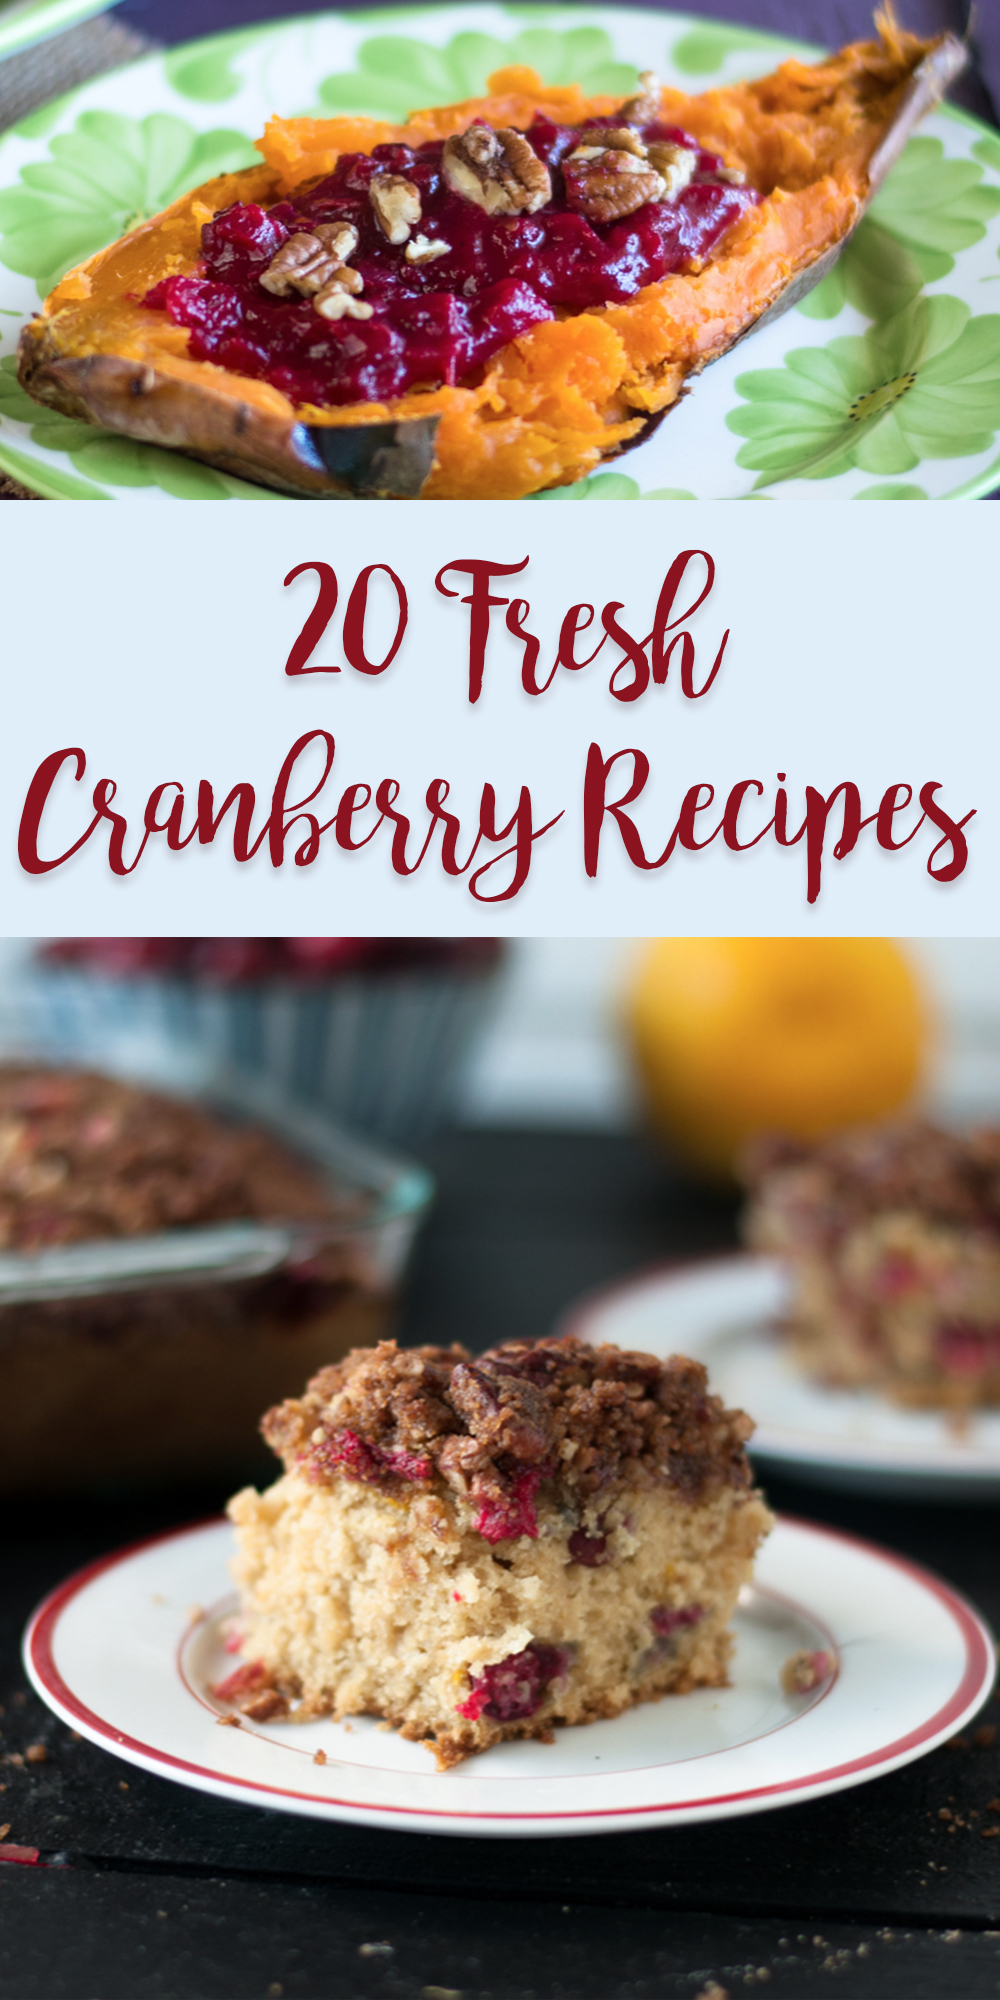 Fresh cranberries are so versatile. Cranberries can be used in salads, smoothies, desserts and more! There are so many great fresh cranberry recipes out there. These 20 fresh cranberry recipes are perfect for the upcoming holiday season too! #cranberry #fall #thanksgiving #vegan #recipes #healthyrecipes #Christmas #Holiday